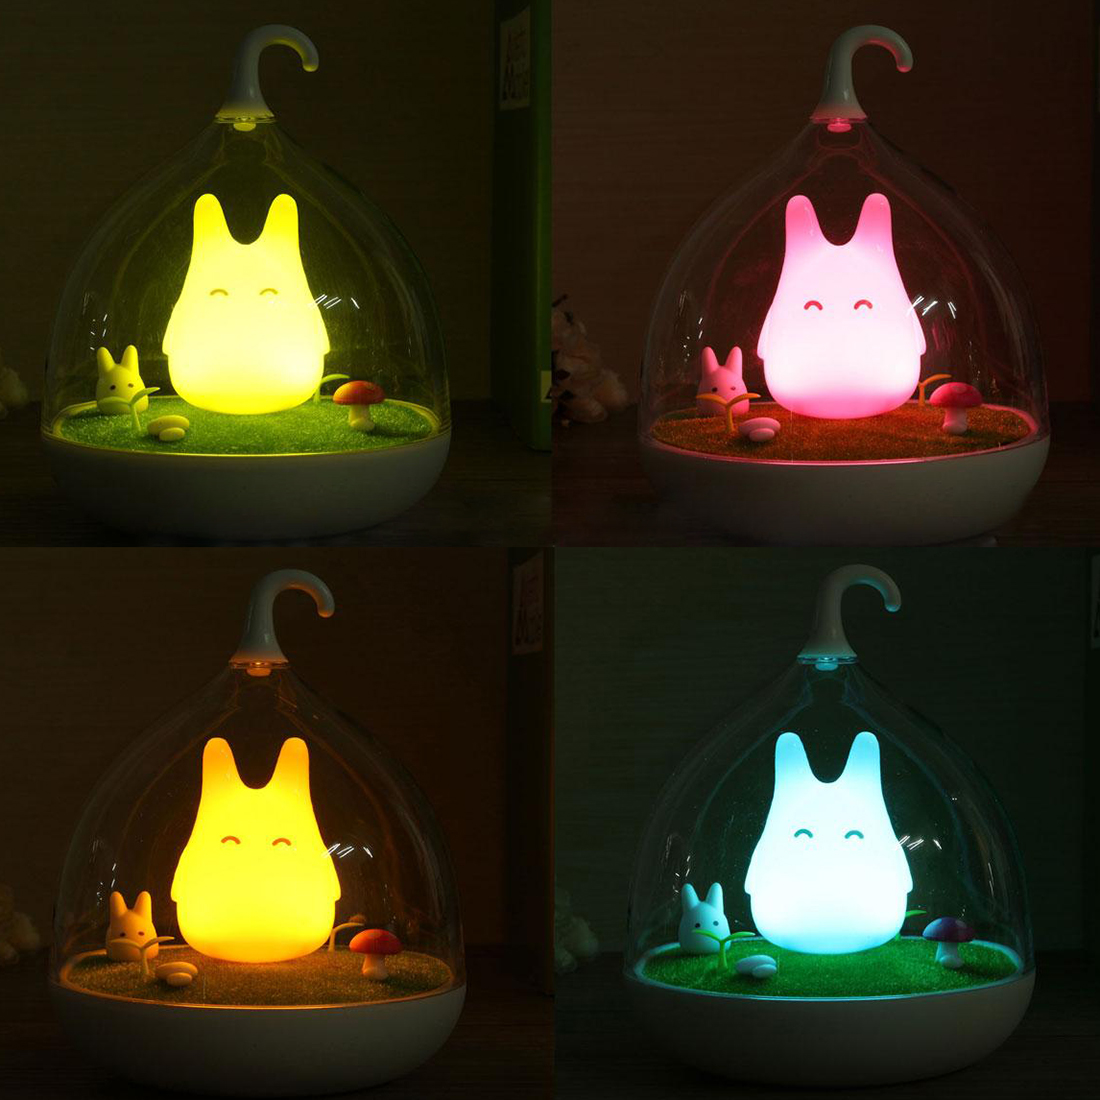 kinder baby maedchen usb led licht kaefig touch sensor nachtlicht lampe hau l1s7 ebay. Black Bedroom Furniture Sets. Home Design Ideas